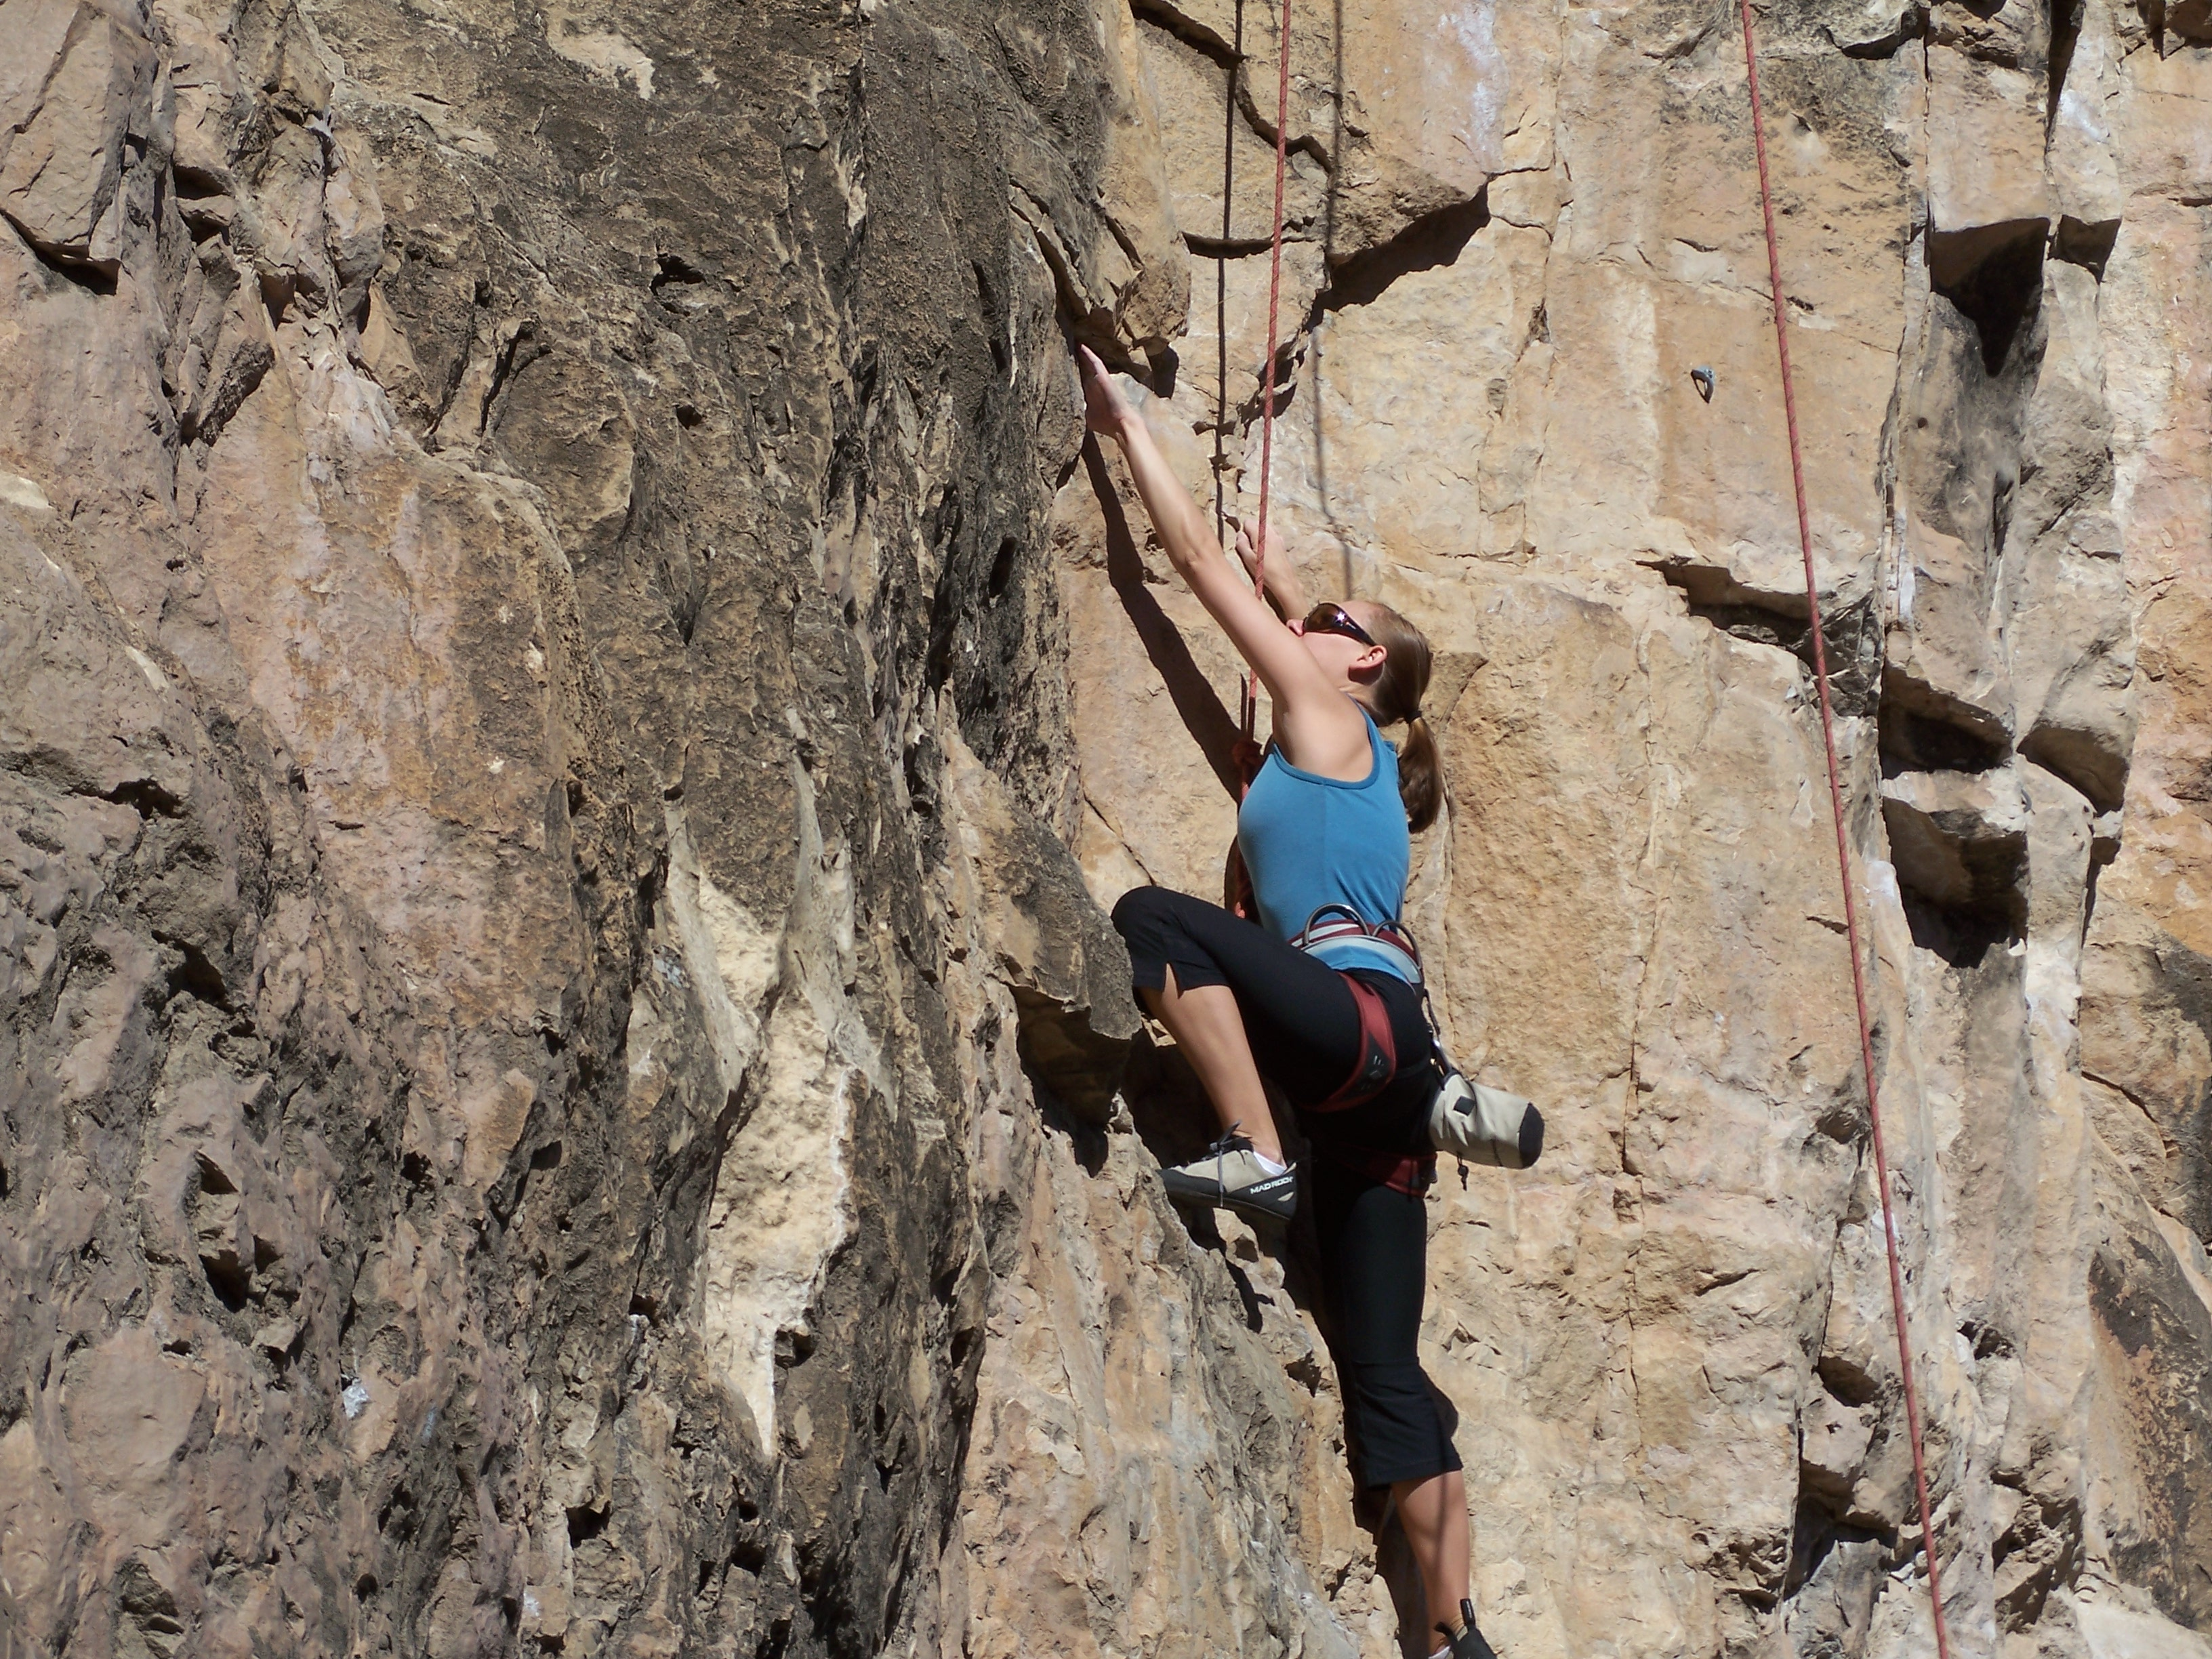 rock-climbing-in-the-black-hills-1361456